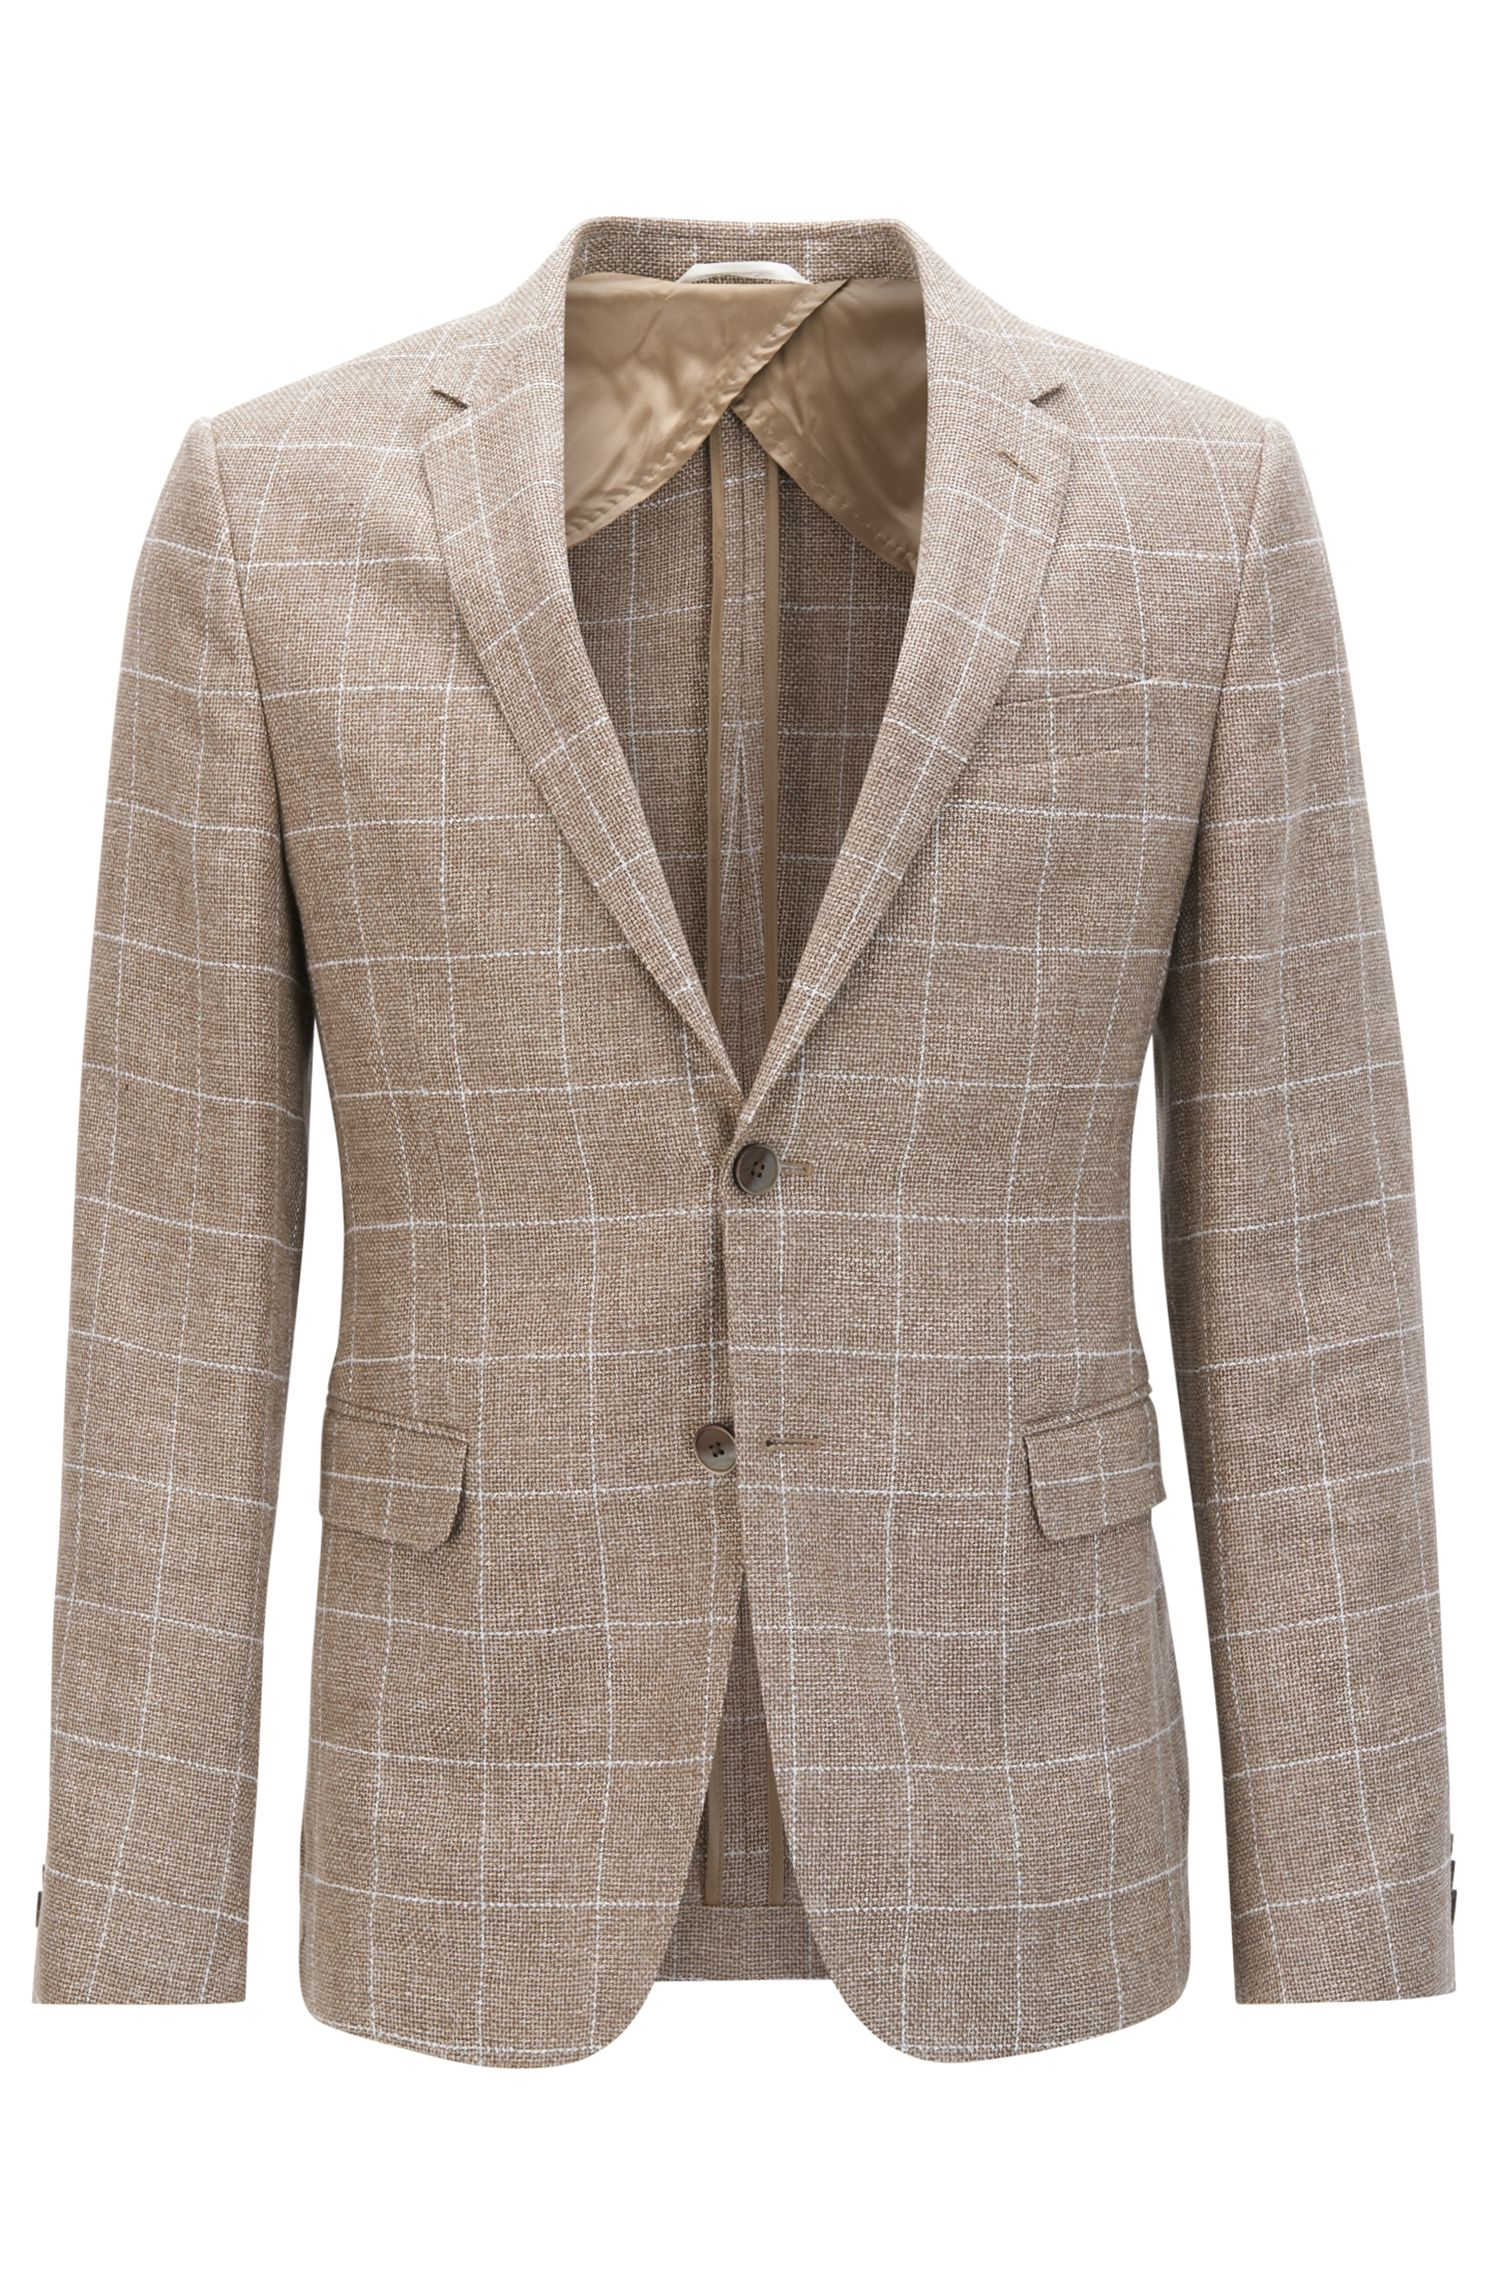 Windowpane Wool Linen Sport Coat, Slim Fit | Nobis, Beige